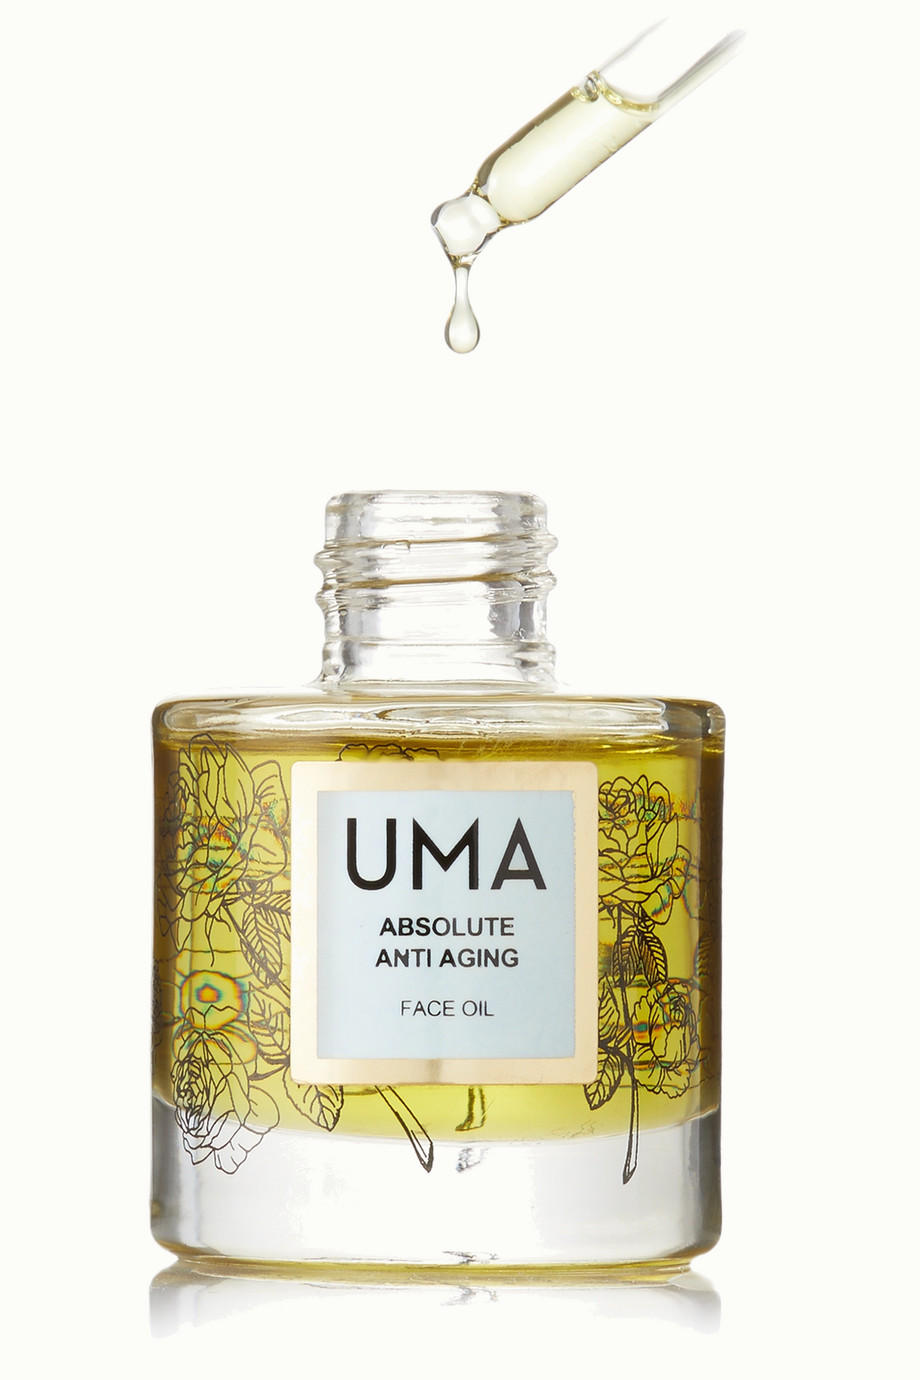 UMA OILS + NET SUSTAIN Absolute Anti-Aging Face Oil,  30ml